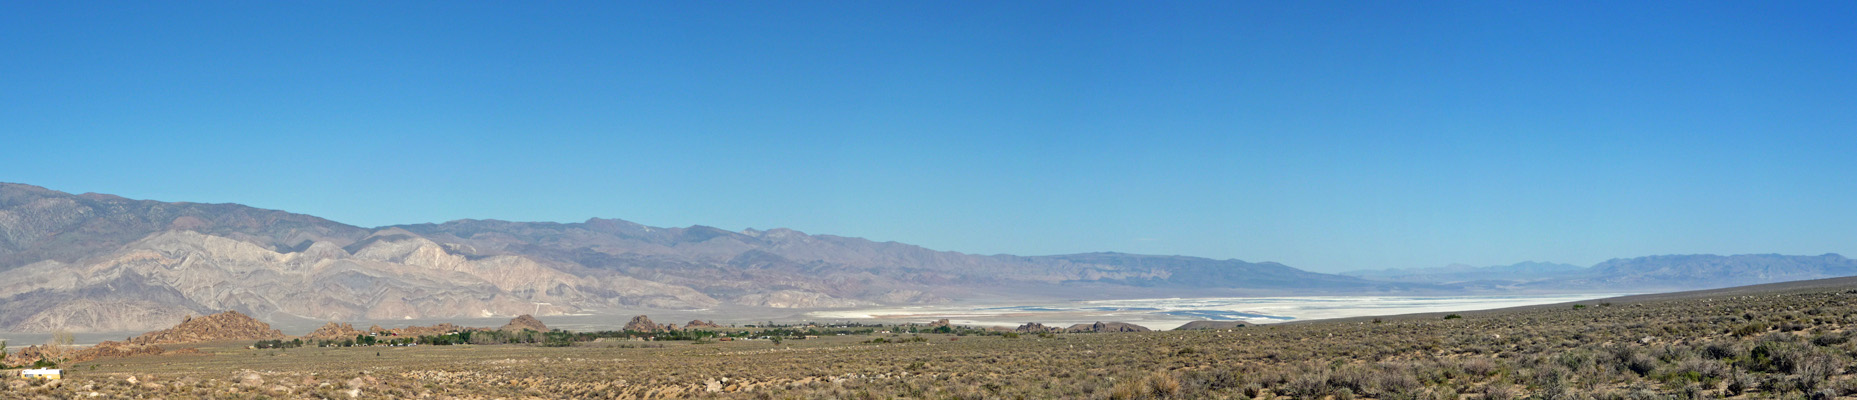 Owens Valley from Tuttle Creek Campground CA